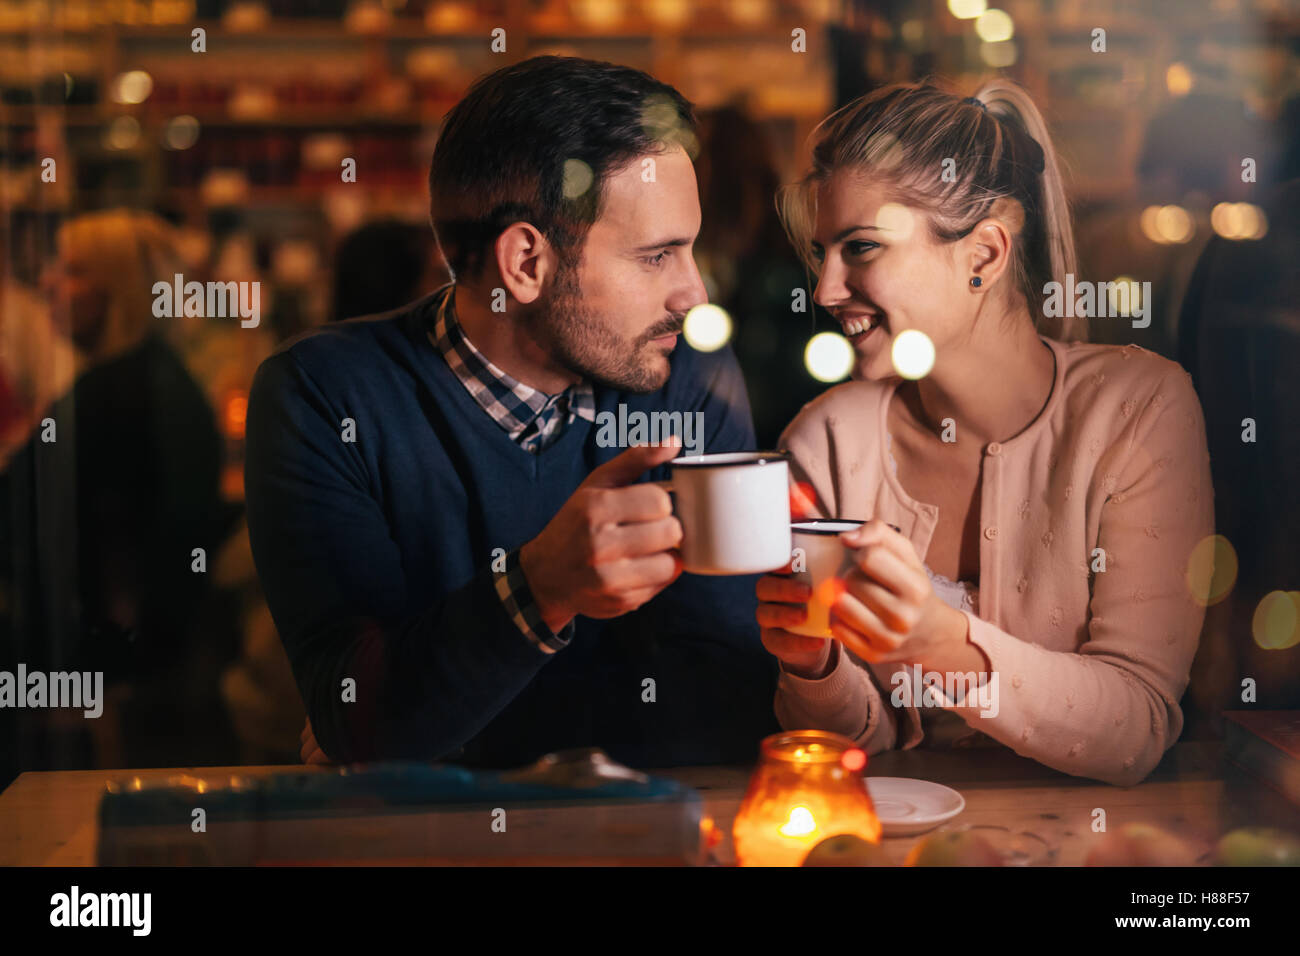 Pub Wallpaper 57 Images: Romantic Couple Dating At Valentines Night In Pub Stock